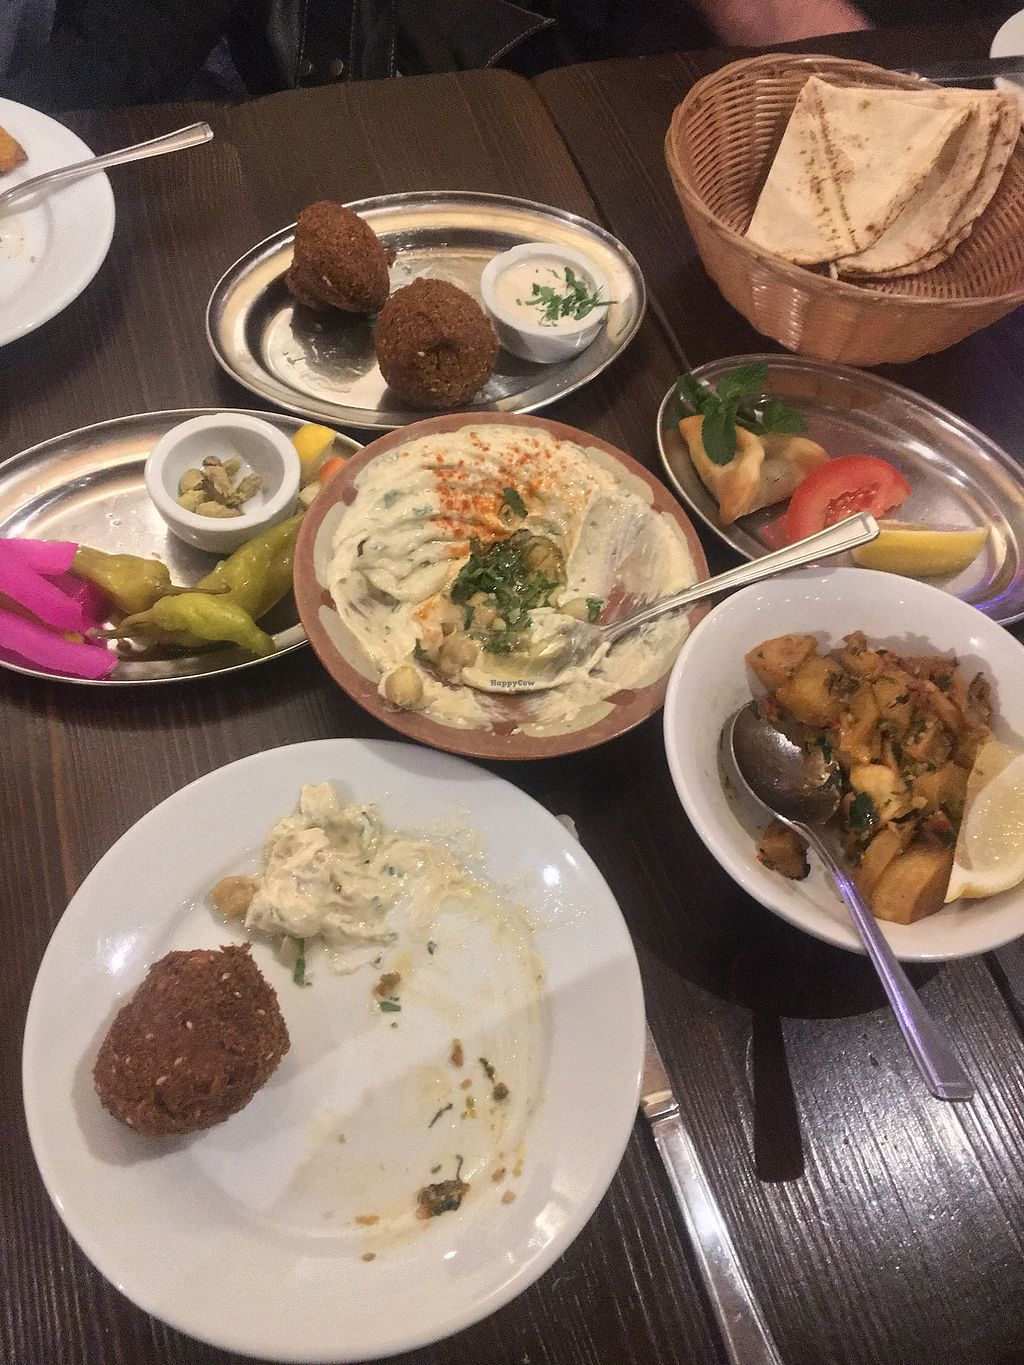 """Photo of Jeitta  by <a href=""""/members/profile/dmcm"""">dmcm</a> <br/>Mid-eating: Hummus Beiruty, Falafel, Batata Harra and Fatayer Spinach - So good! <br/> December 13, 2017  - <a href='/contact/abuse/image/55080/335290'>Report</a>"""